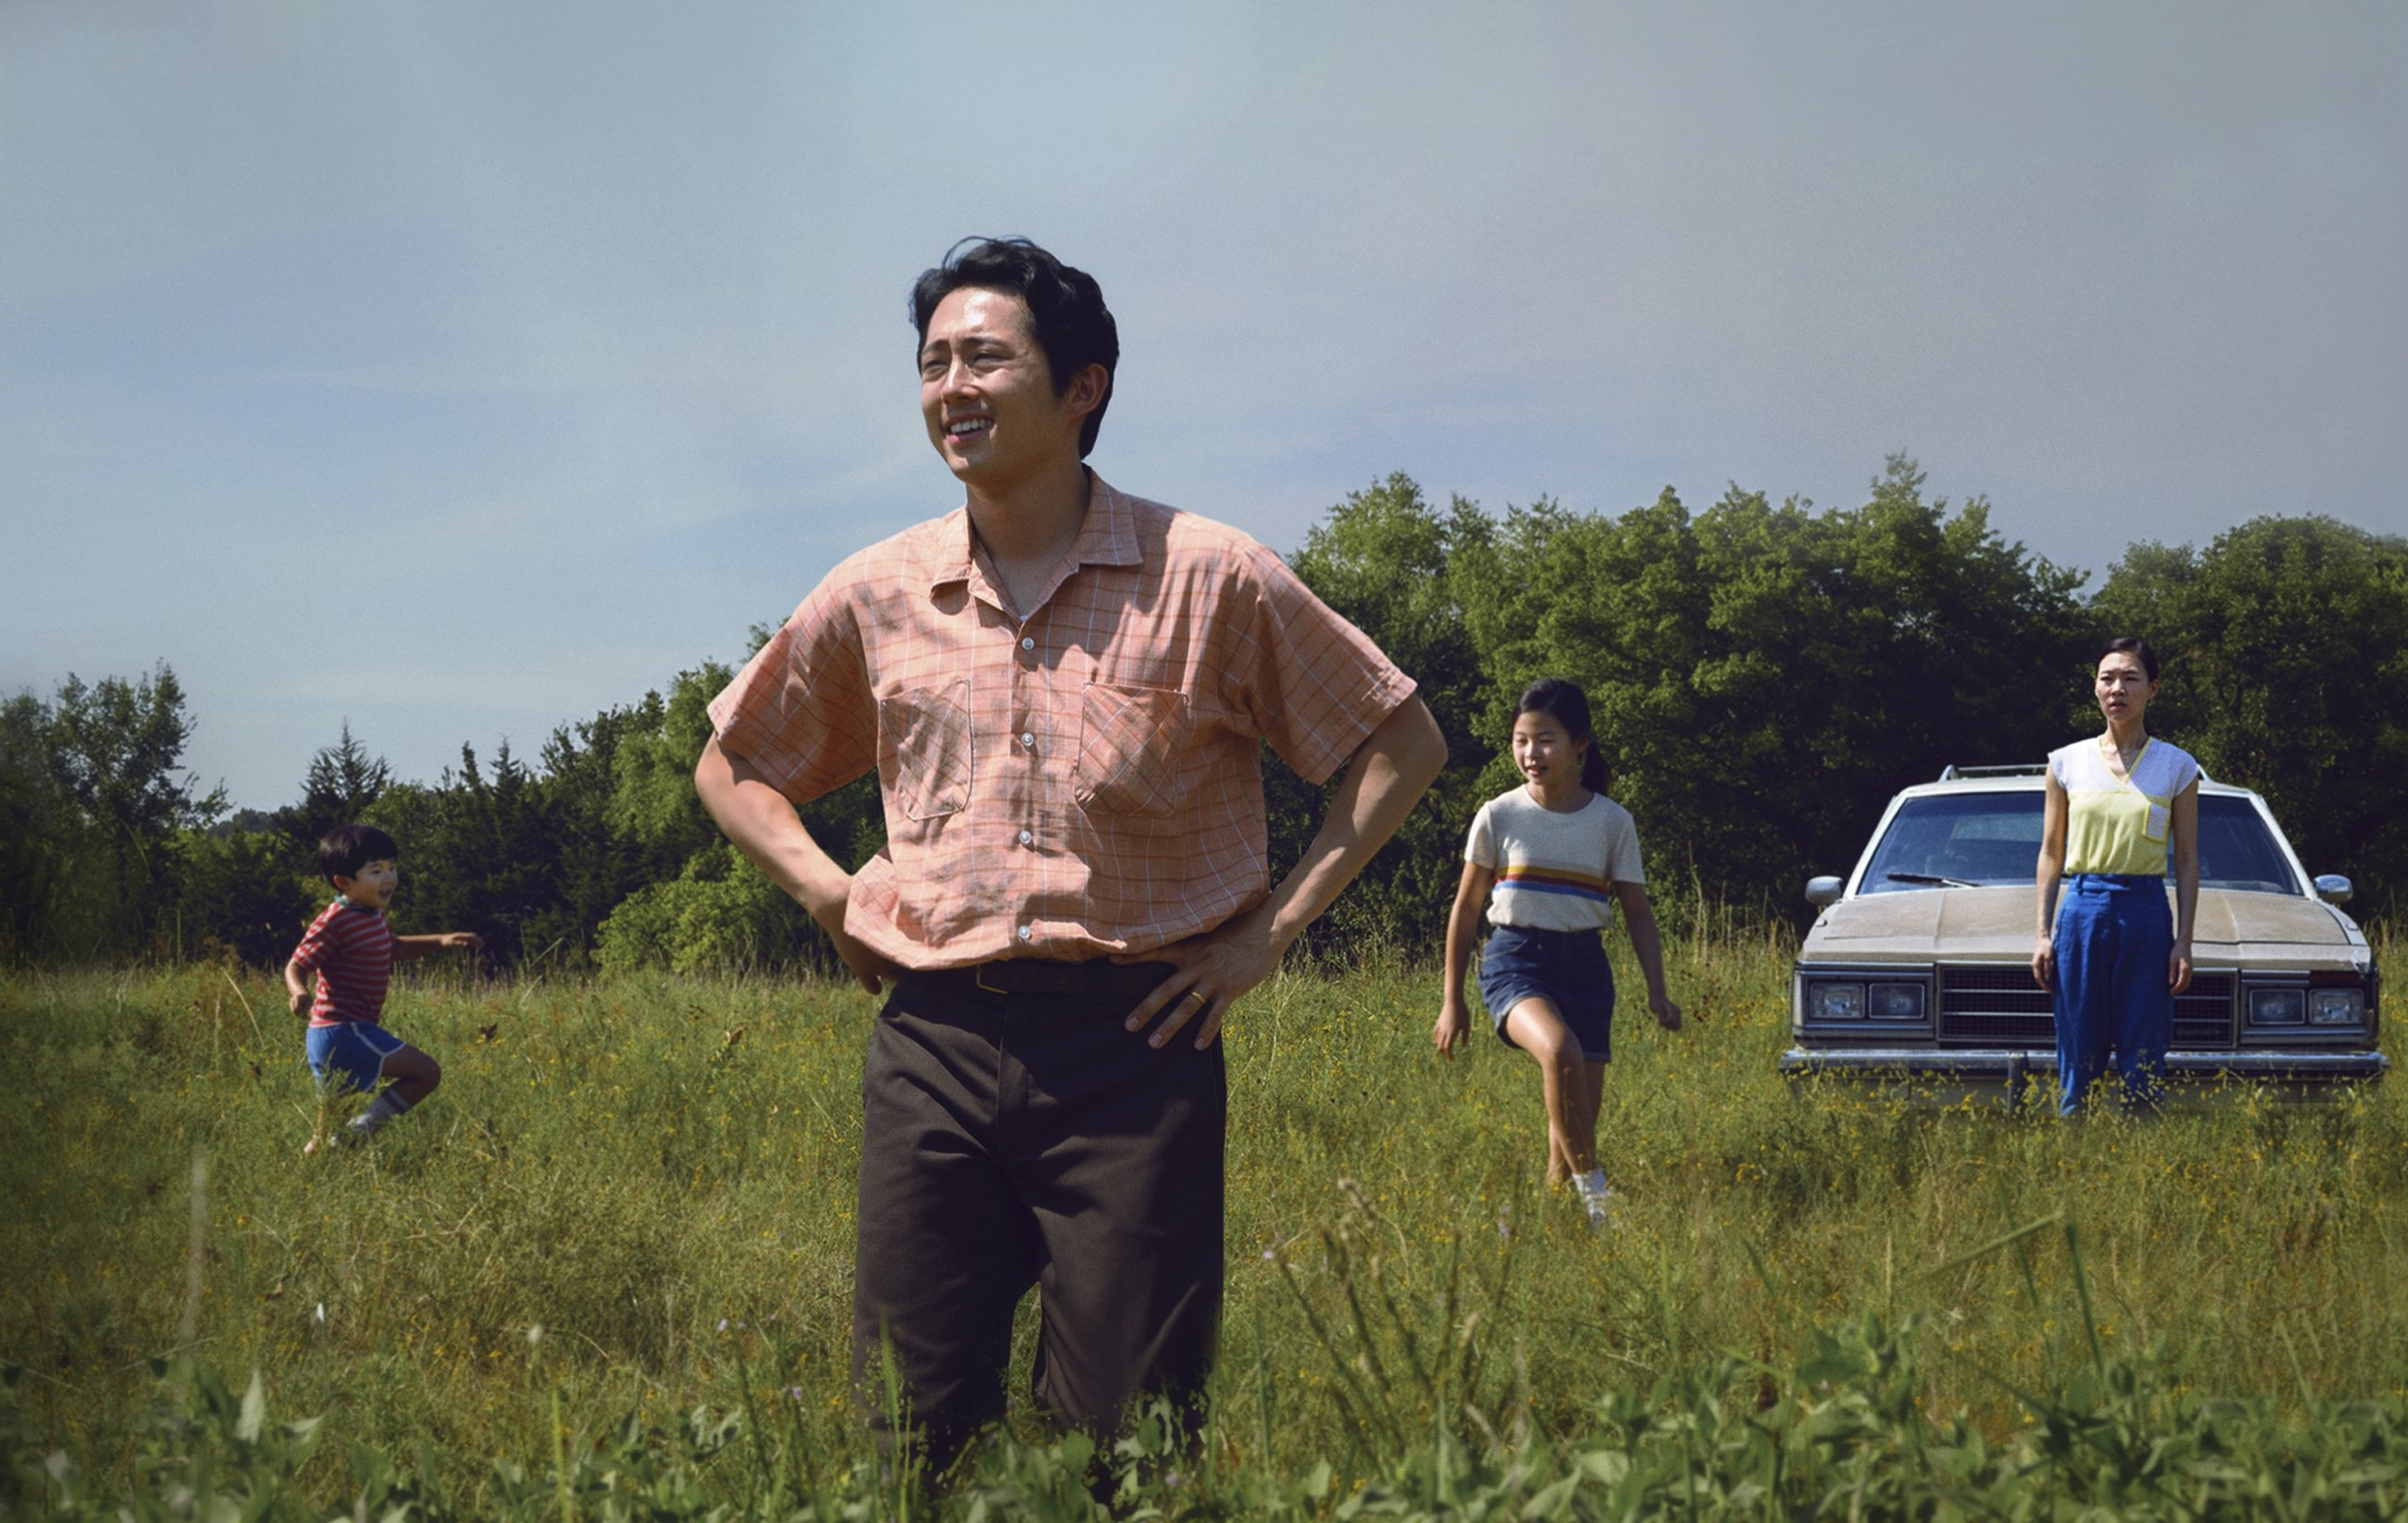 """A still image from the film """"Minari"""" shows Steven Yeun's character in the foreground, with his family in the background. (AP)"""